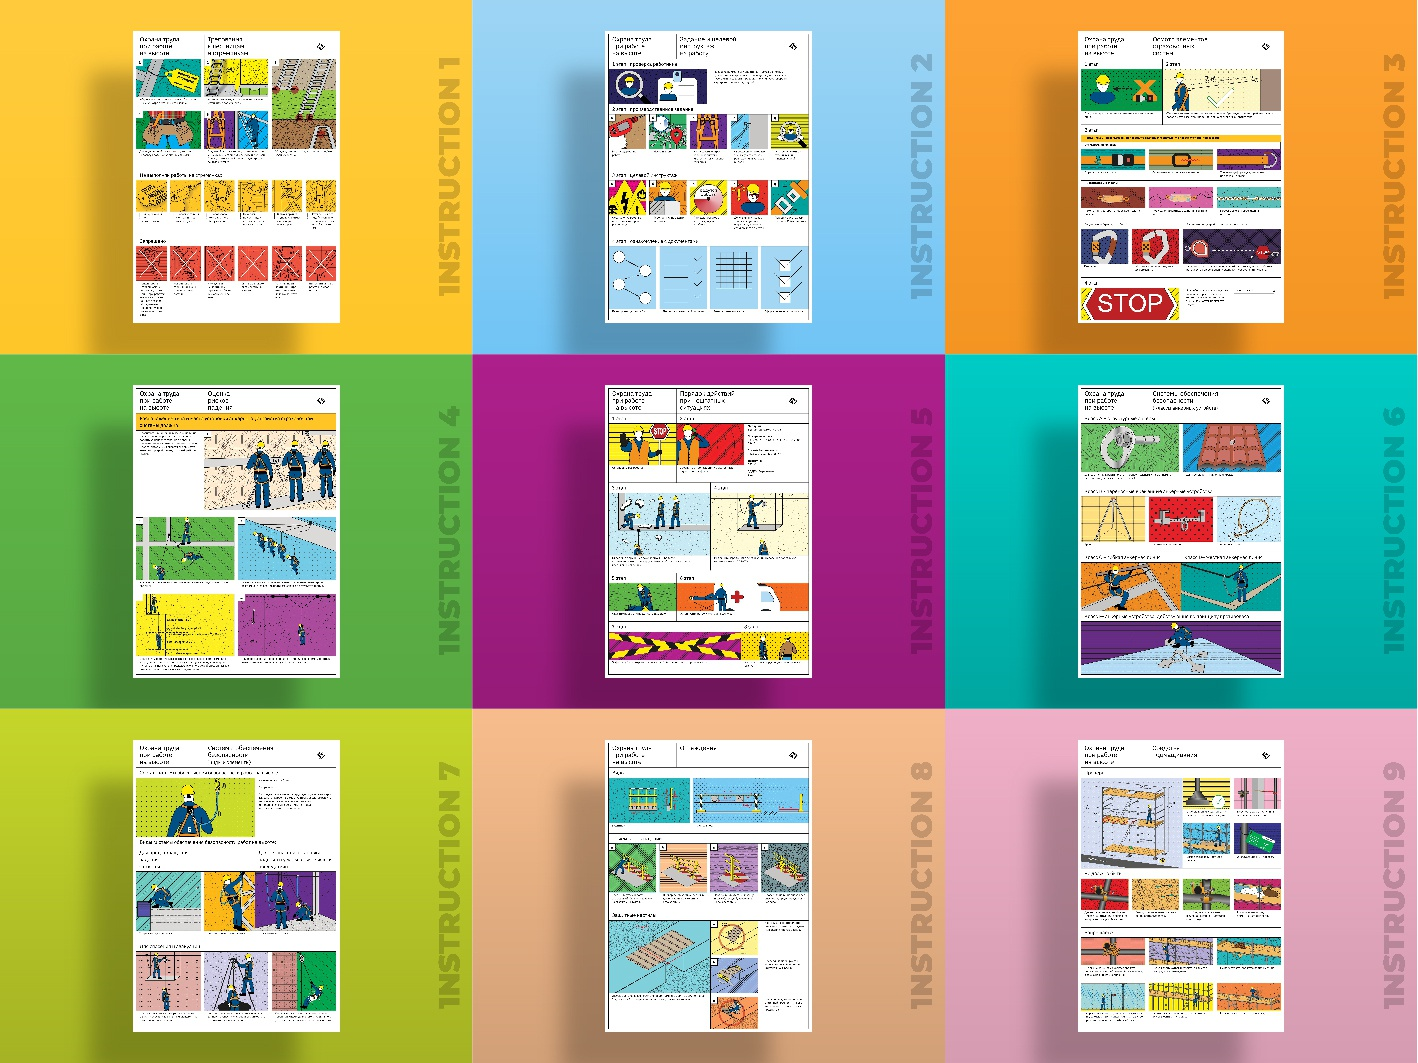 Evrokhim Instructions instruction eccentric colorful instructional illustration illustrator indesign typography grid cyrillic